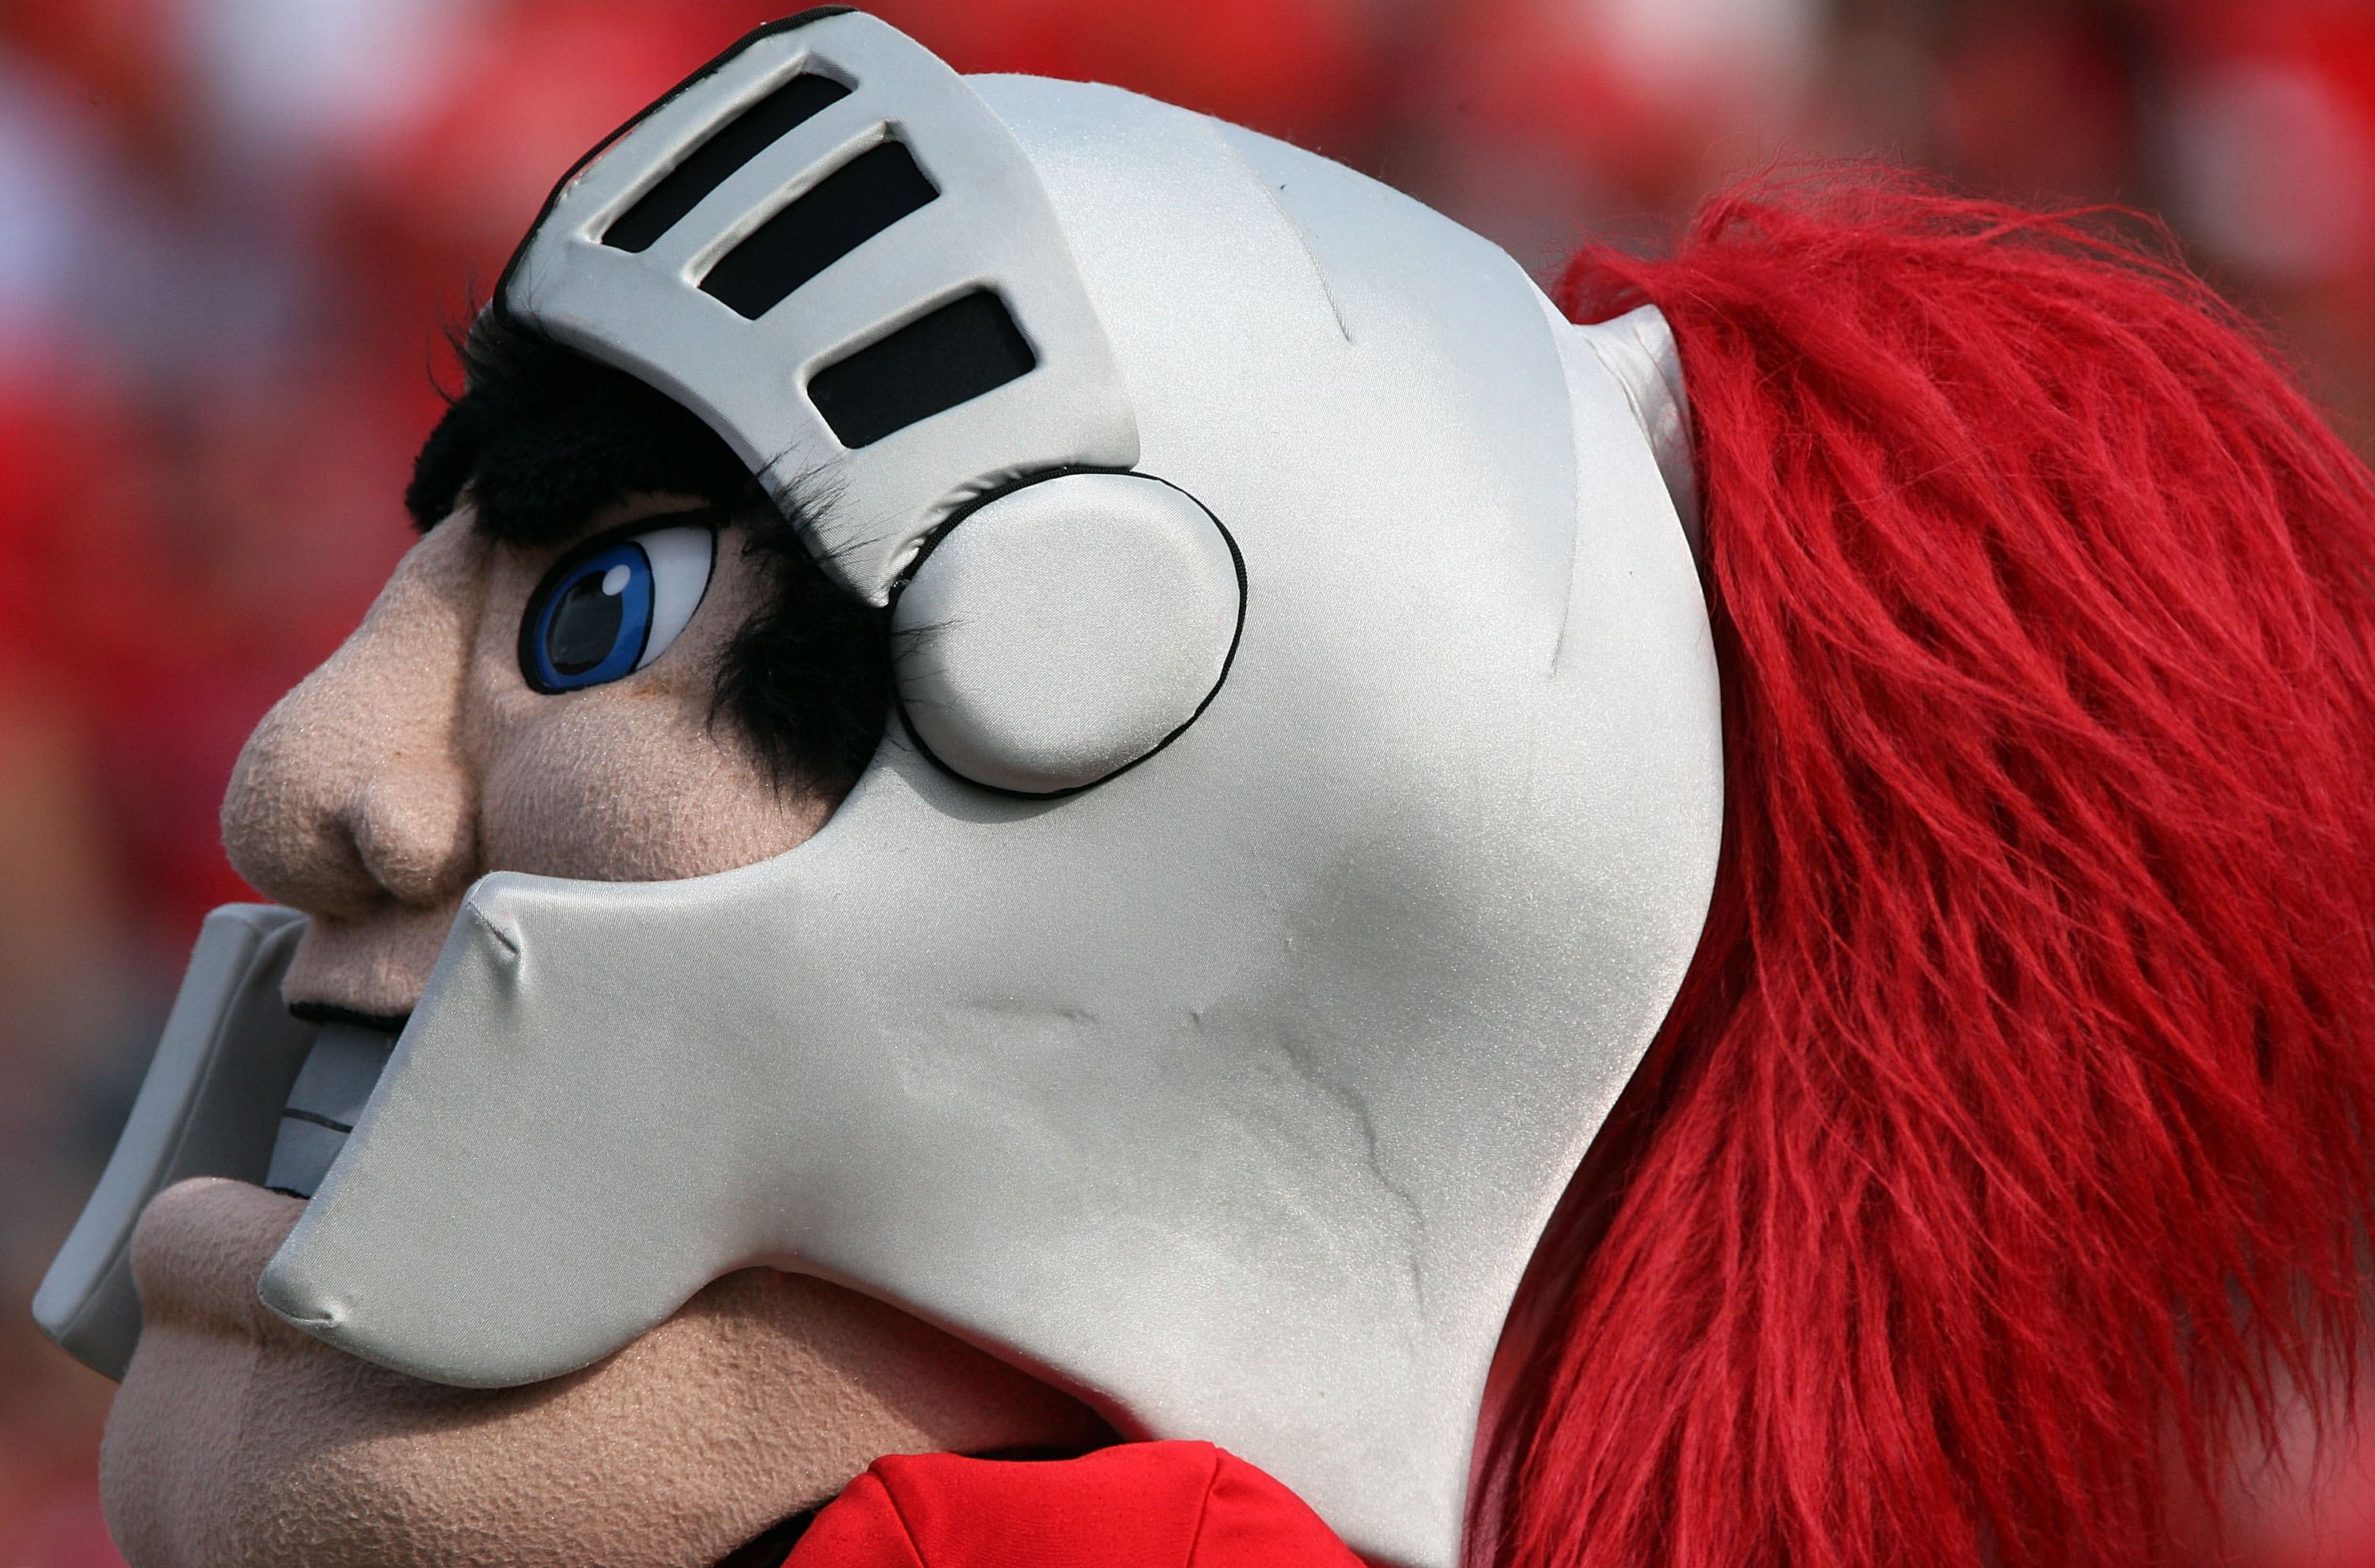 PISCATAWAY, NJ - SEPTEMBER 07:  The Rutgers Scarlet Knights mascot performs during the game against the Cincinnati Bearcats at Rutgers Stadium on September 7, 2009 in Piscataway, New Jersey.  (Photo by Jim McIsaac/Getty Images)